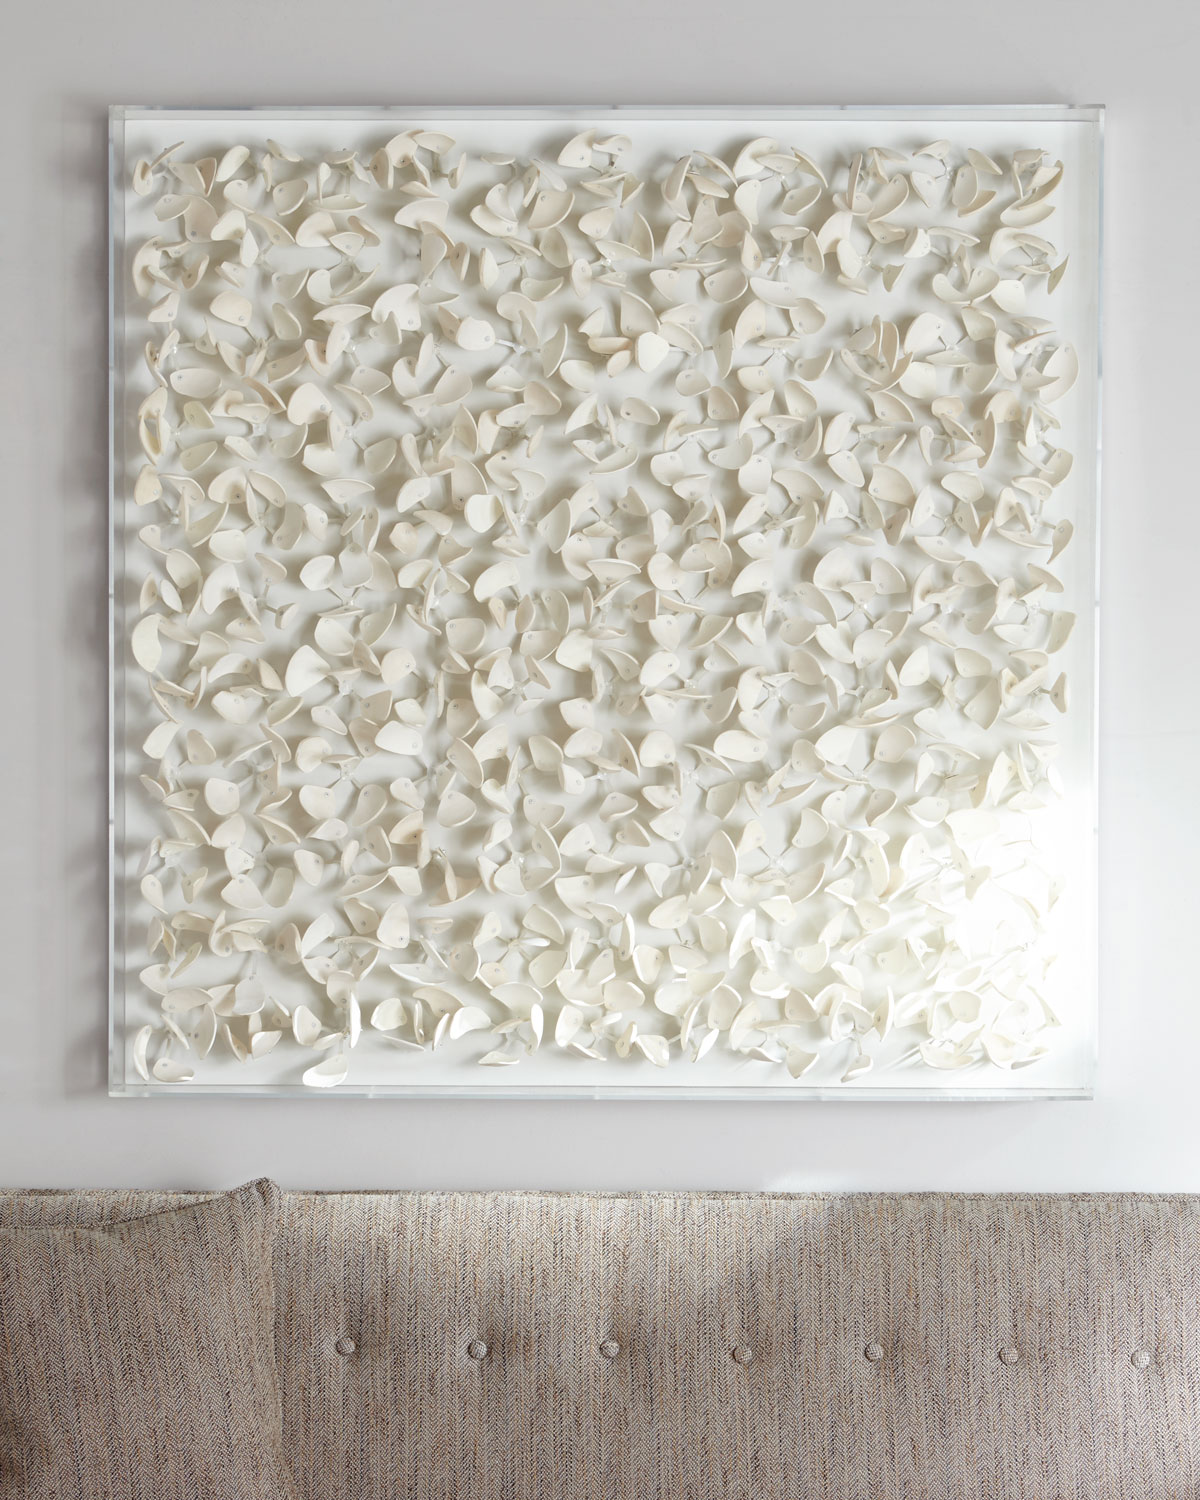 """Handcrafted wall decor. Sliced, polished coconut shell arranged in petal formations. 45.5""""Sq. x 5""""D. Acrylic frame. Imported. Weight, 50 lbs. Boxed weight, approximately 84 lbs."""